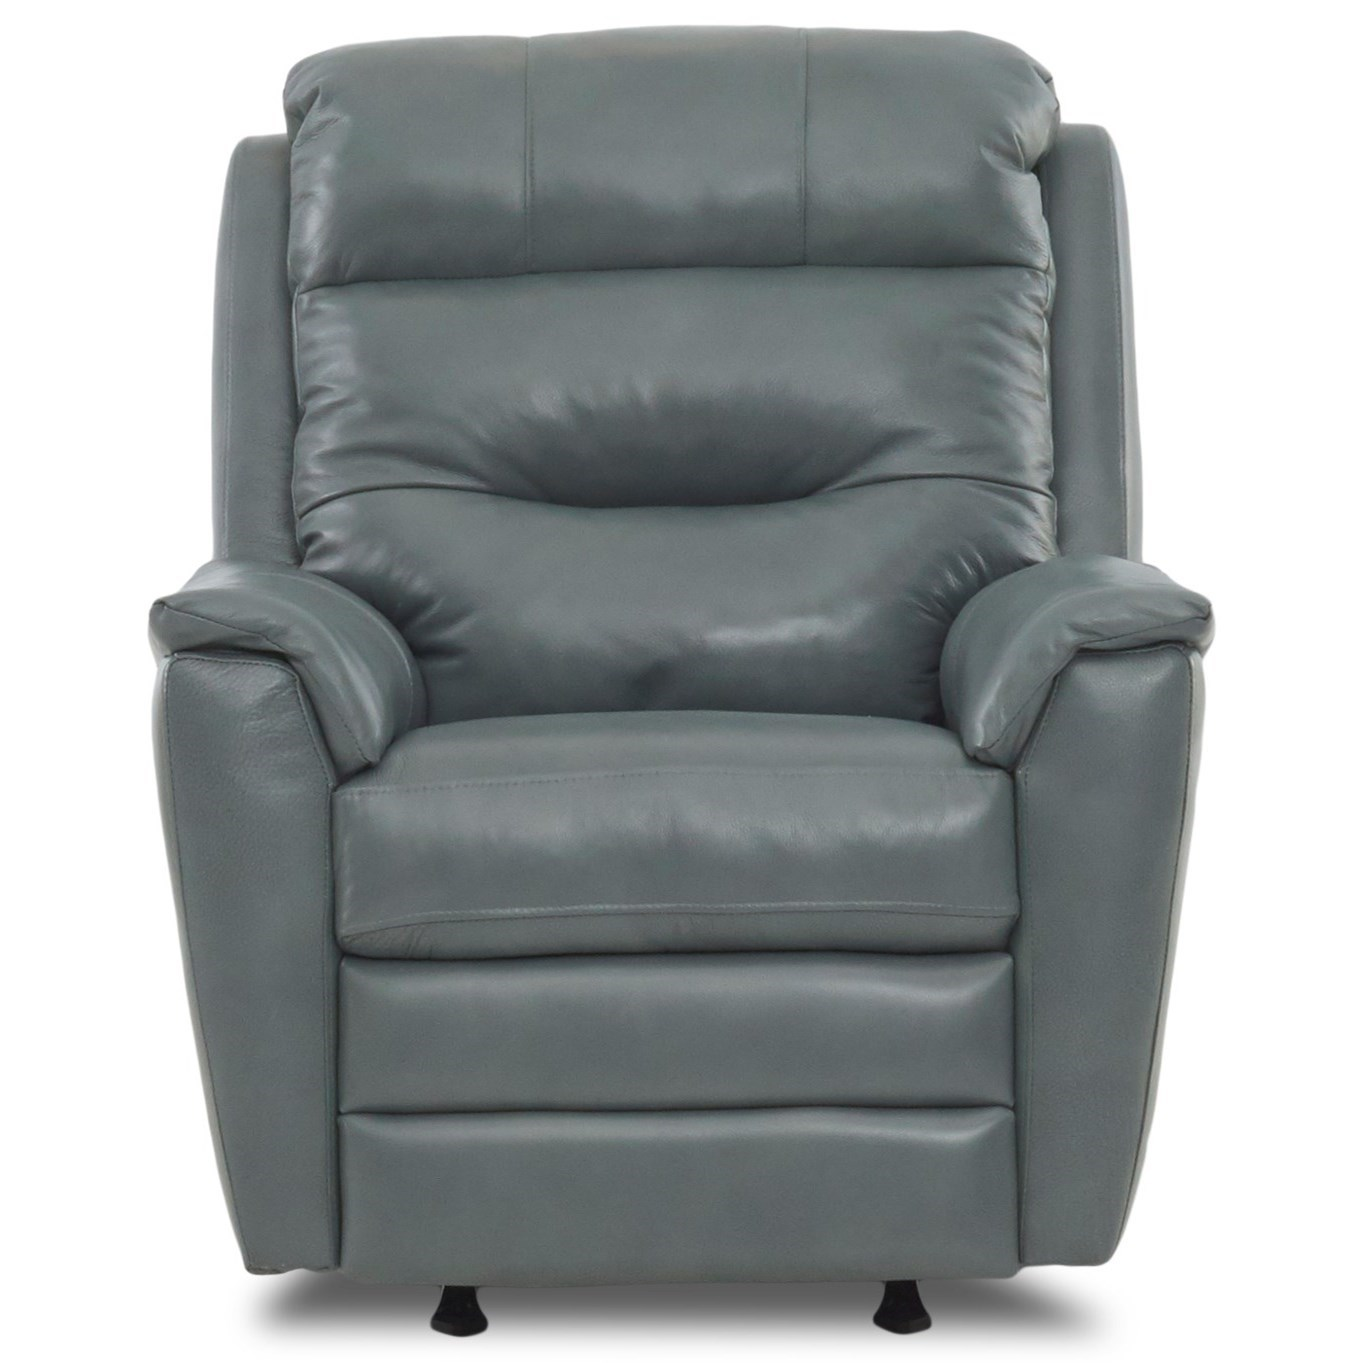 Nola Power Rocking Recliner with Power Headrest by Klaussner at Hudson's Furniture